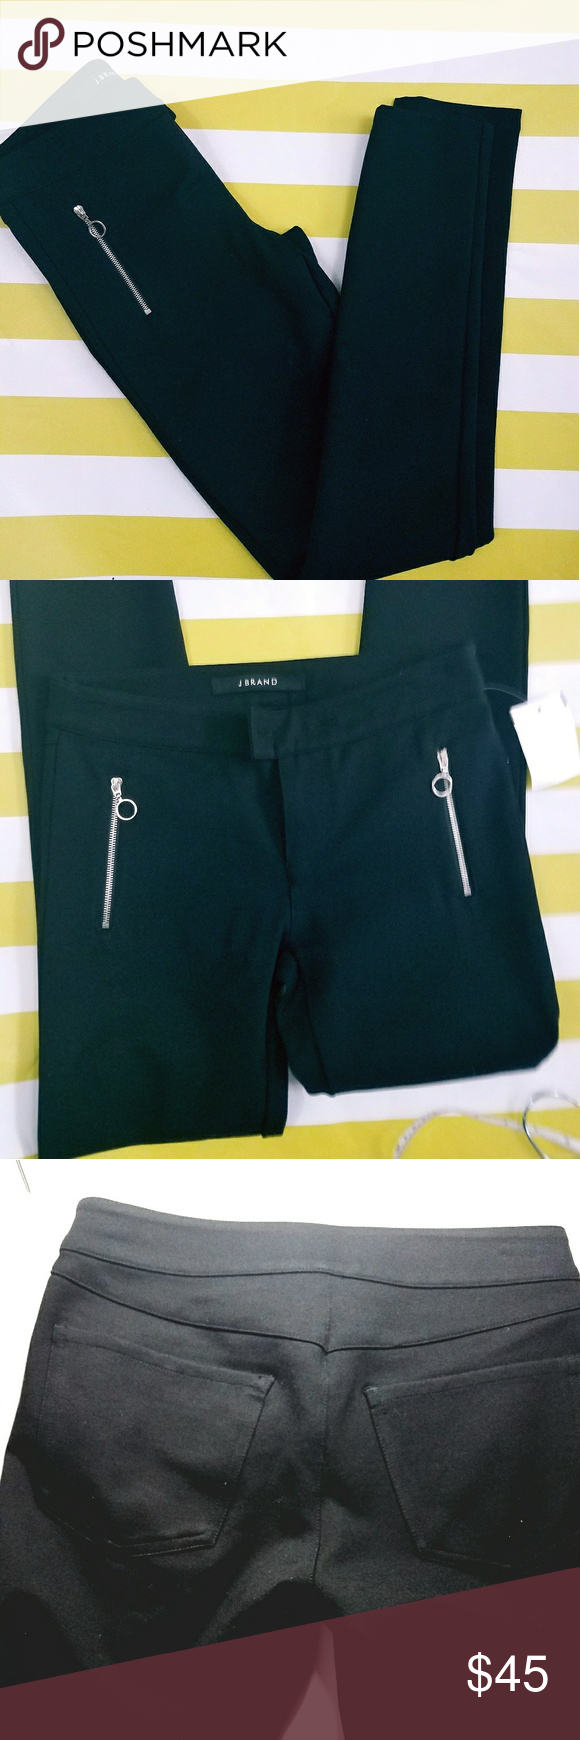 """J Brand skinny ponte knit pants NWOT ponte knit pants from J Brand Length approx: 35.5"""" Inseam approx: 28"""" Size 25 Missing front button  Seam coming apart as shown in the last photo but can easily be stitched J Brand Pants"""